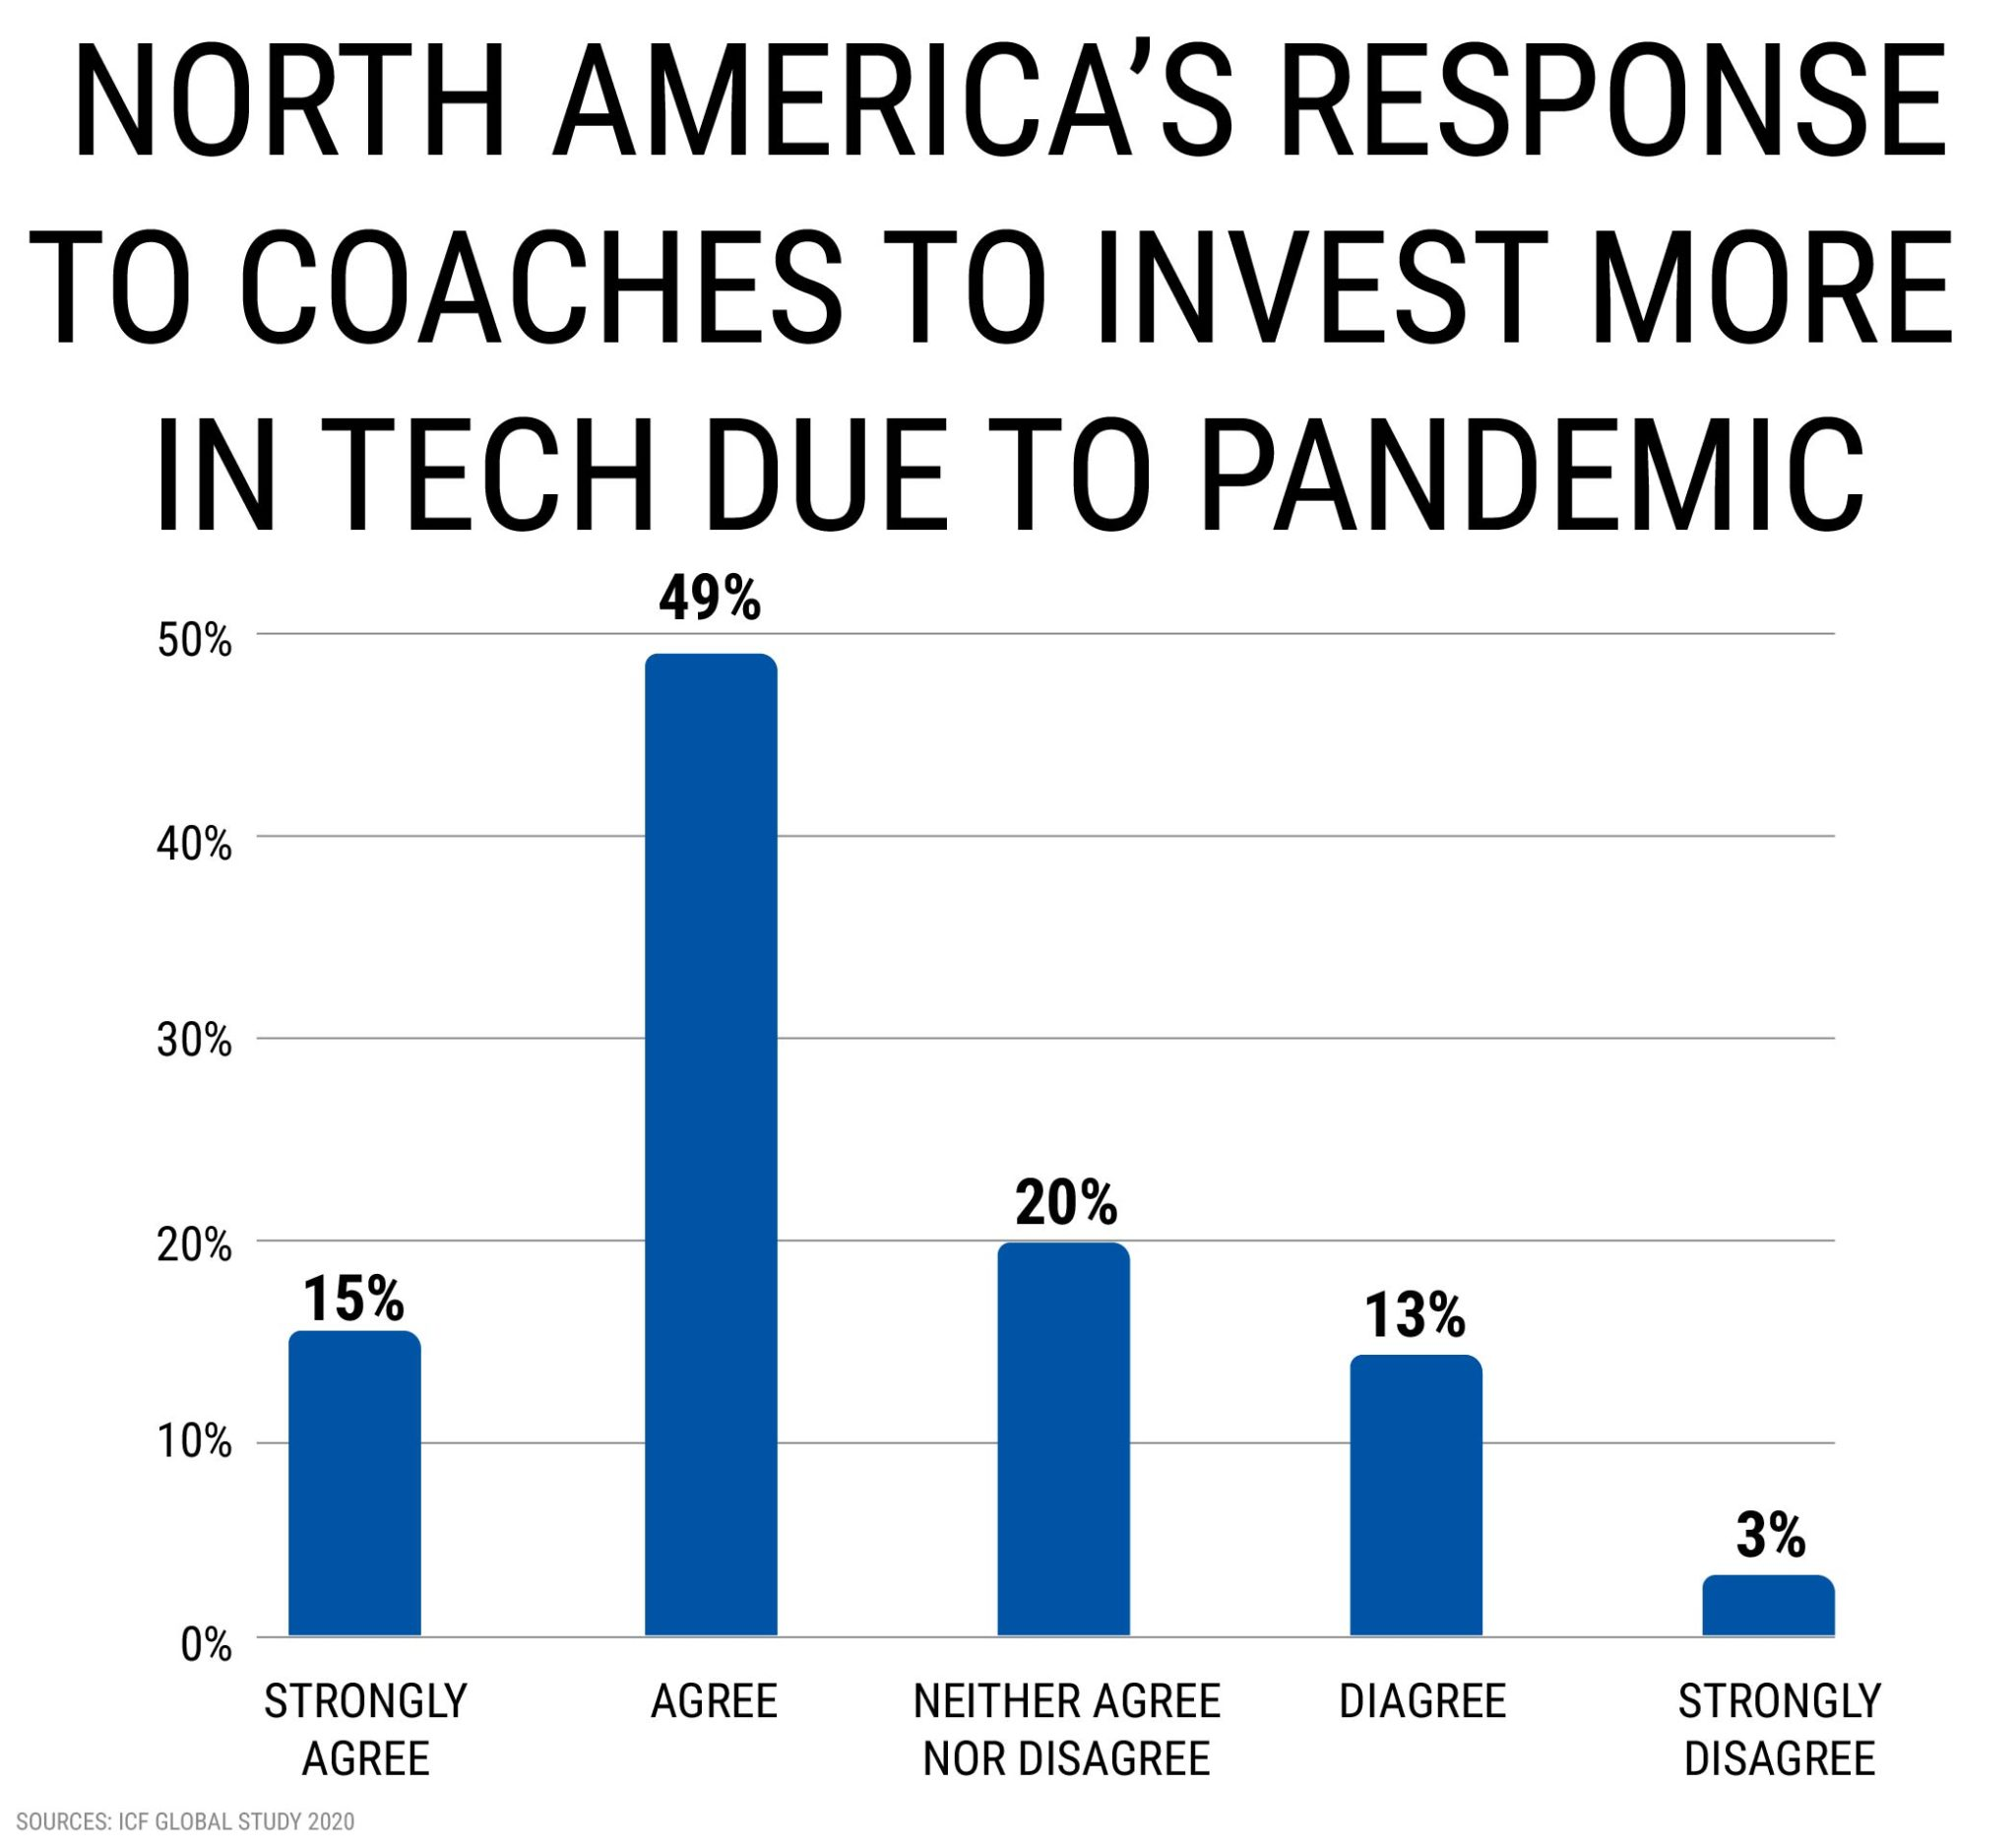 COACHES INVESTMENT IN TECH DUE TO PANDEMIC